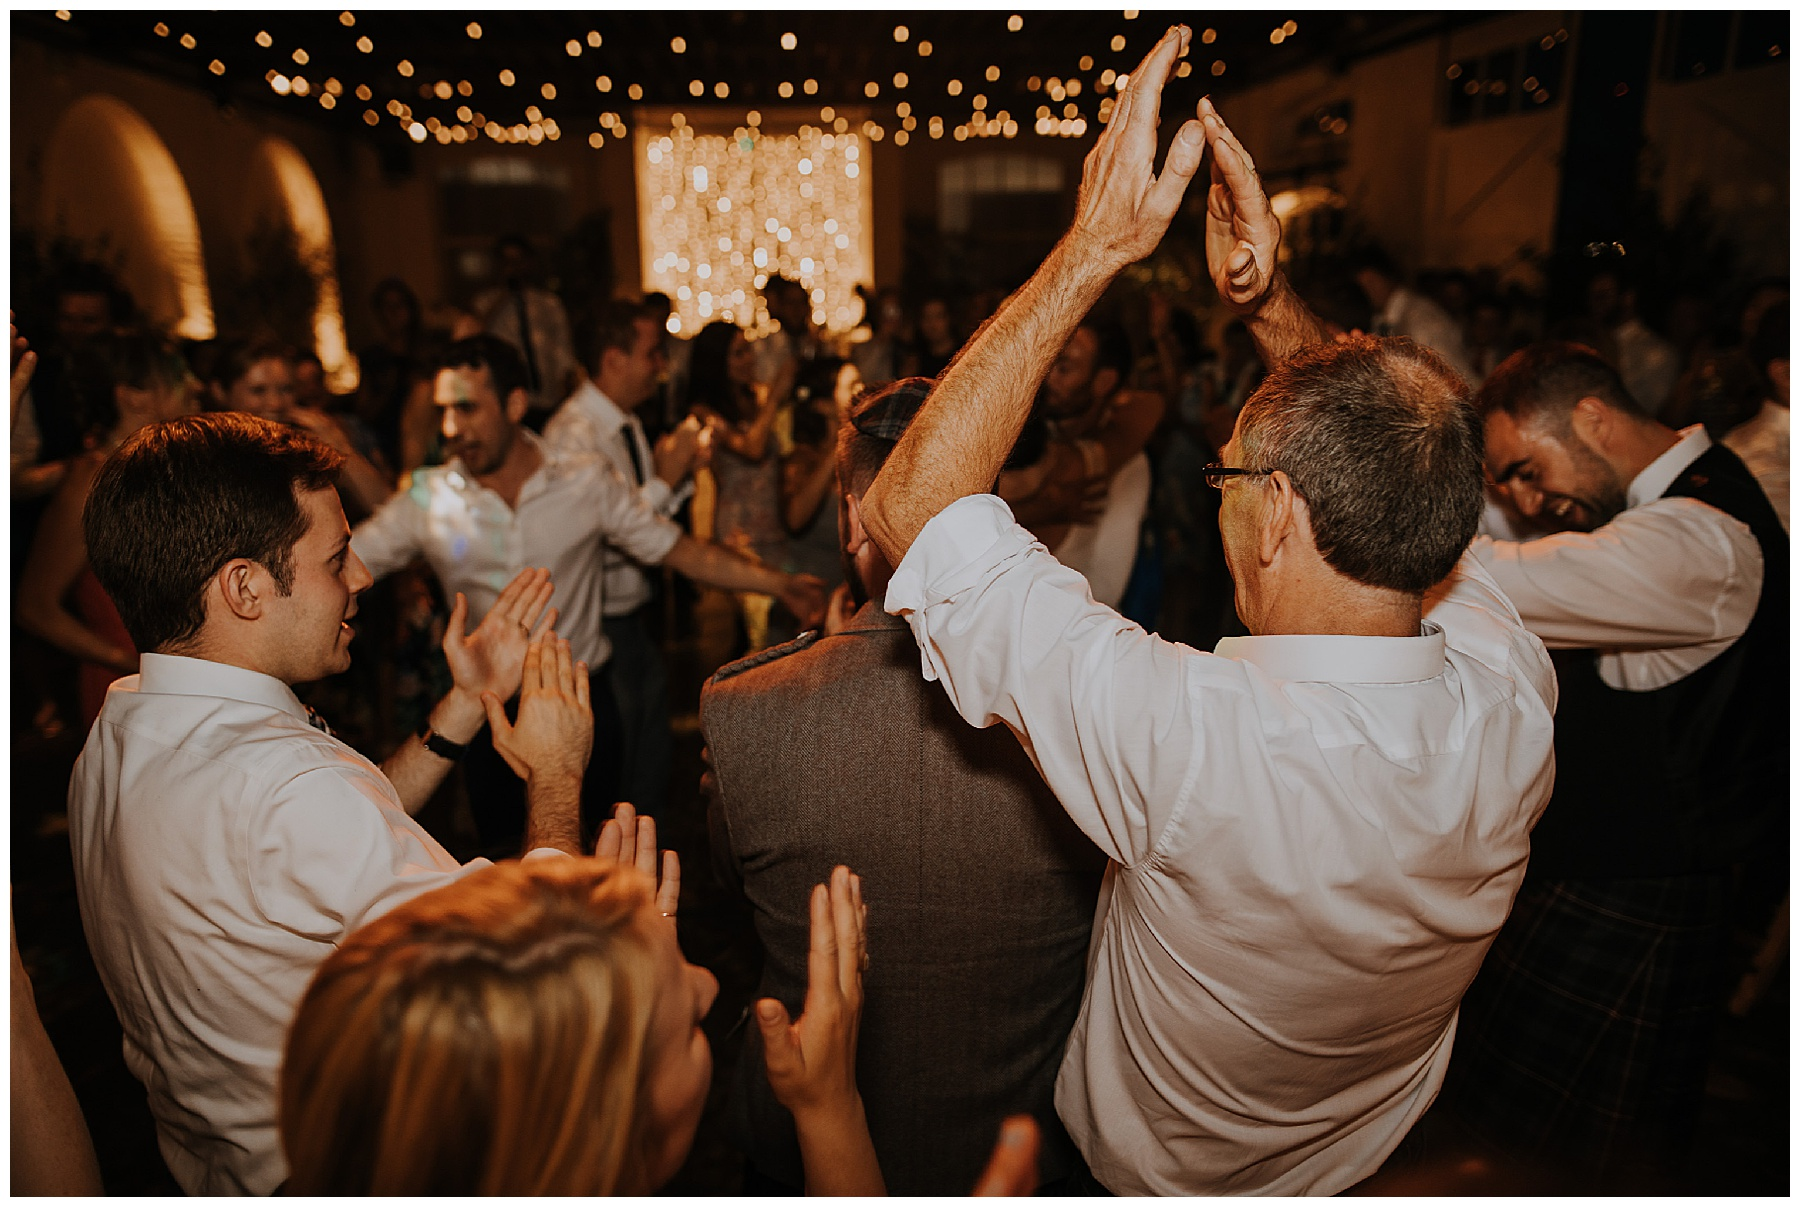 the father of the bride has his hands in the air